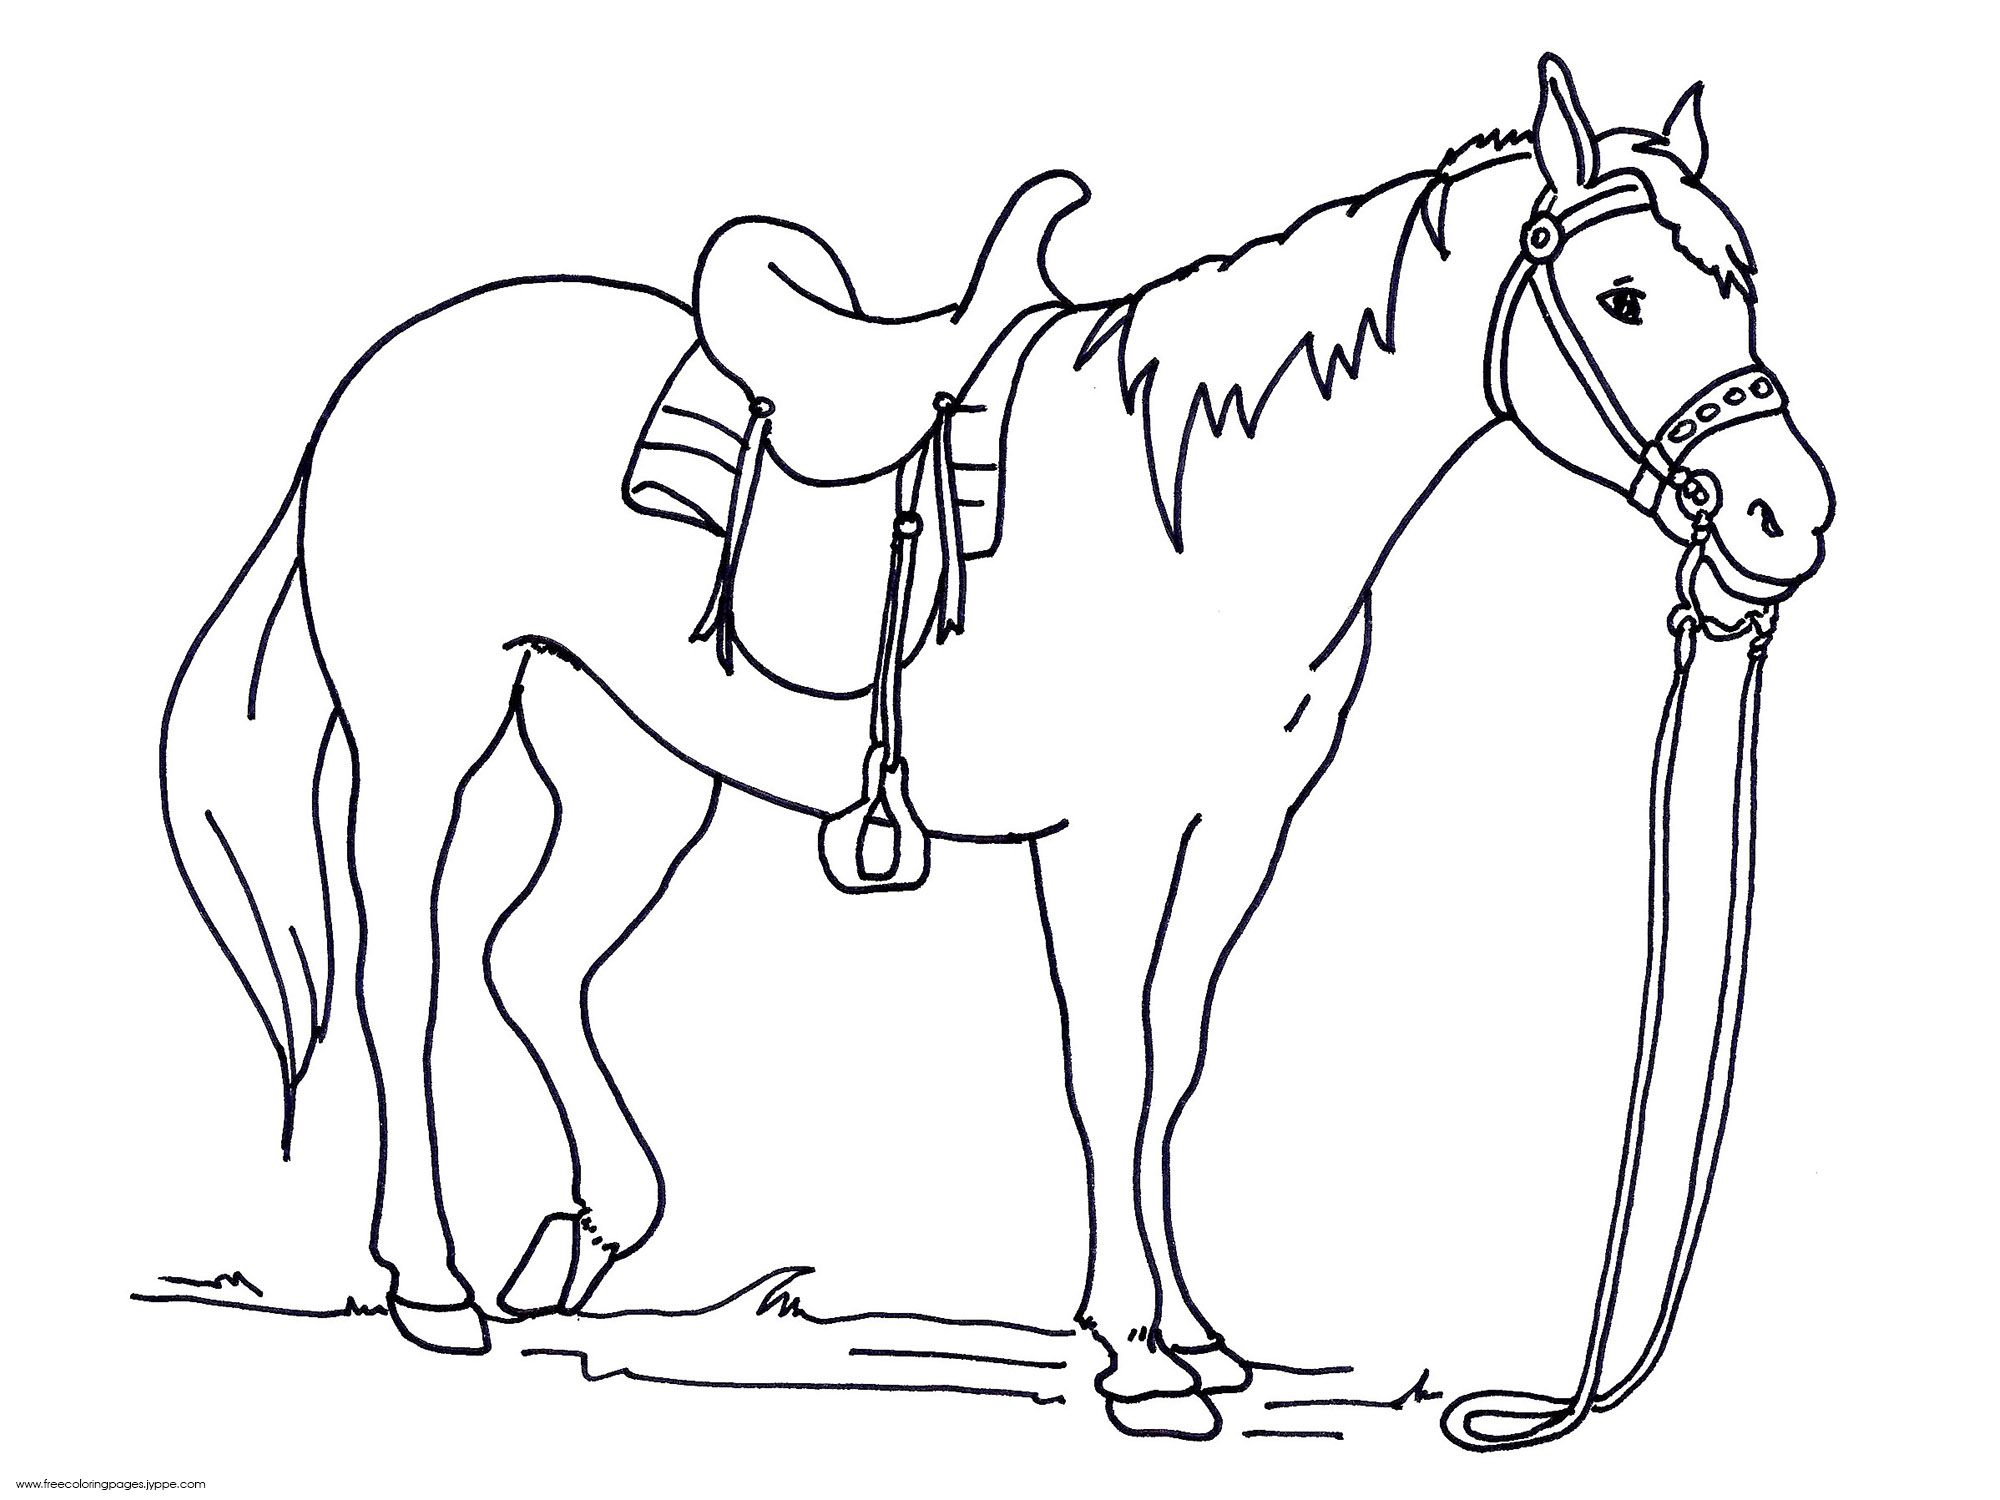 nicoles horse coloring pages - photo#22